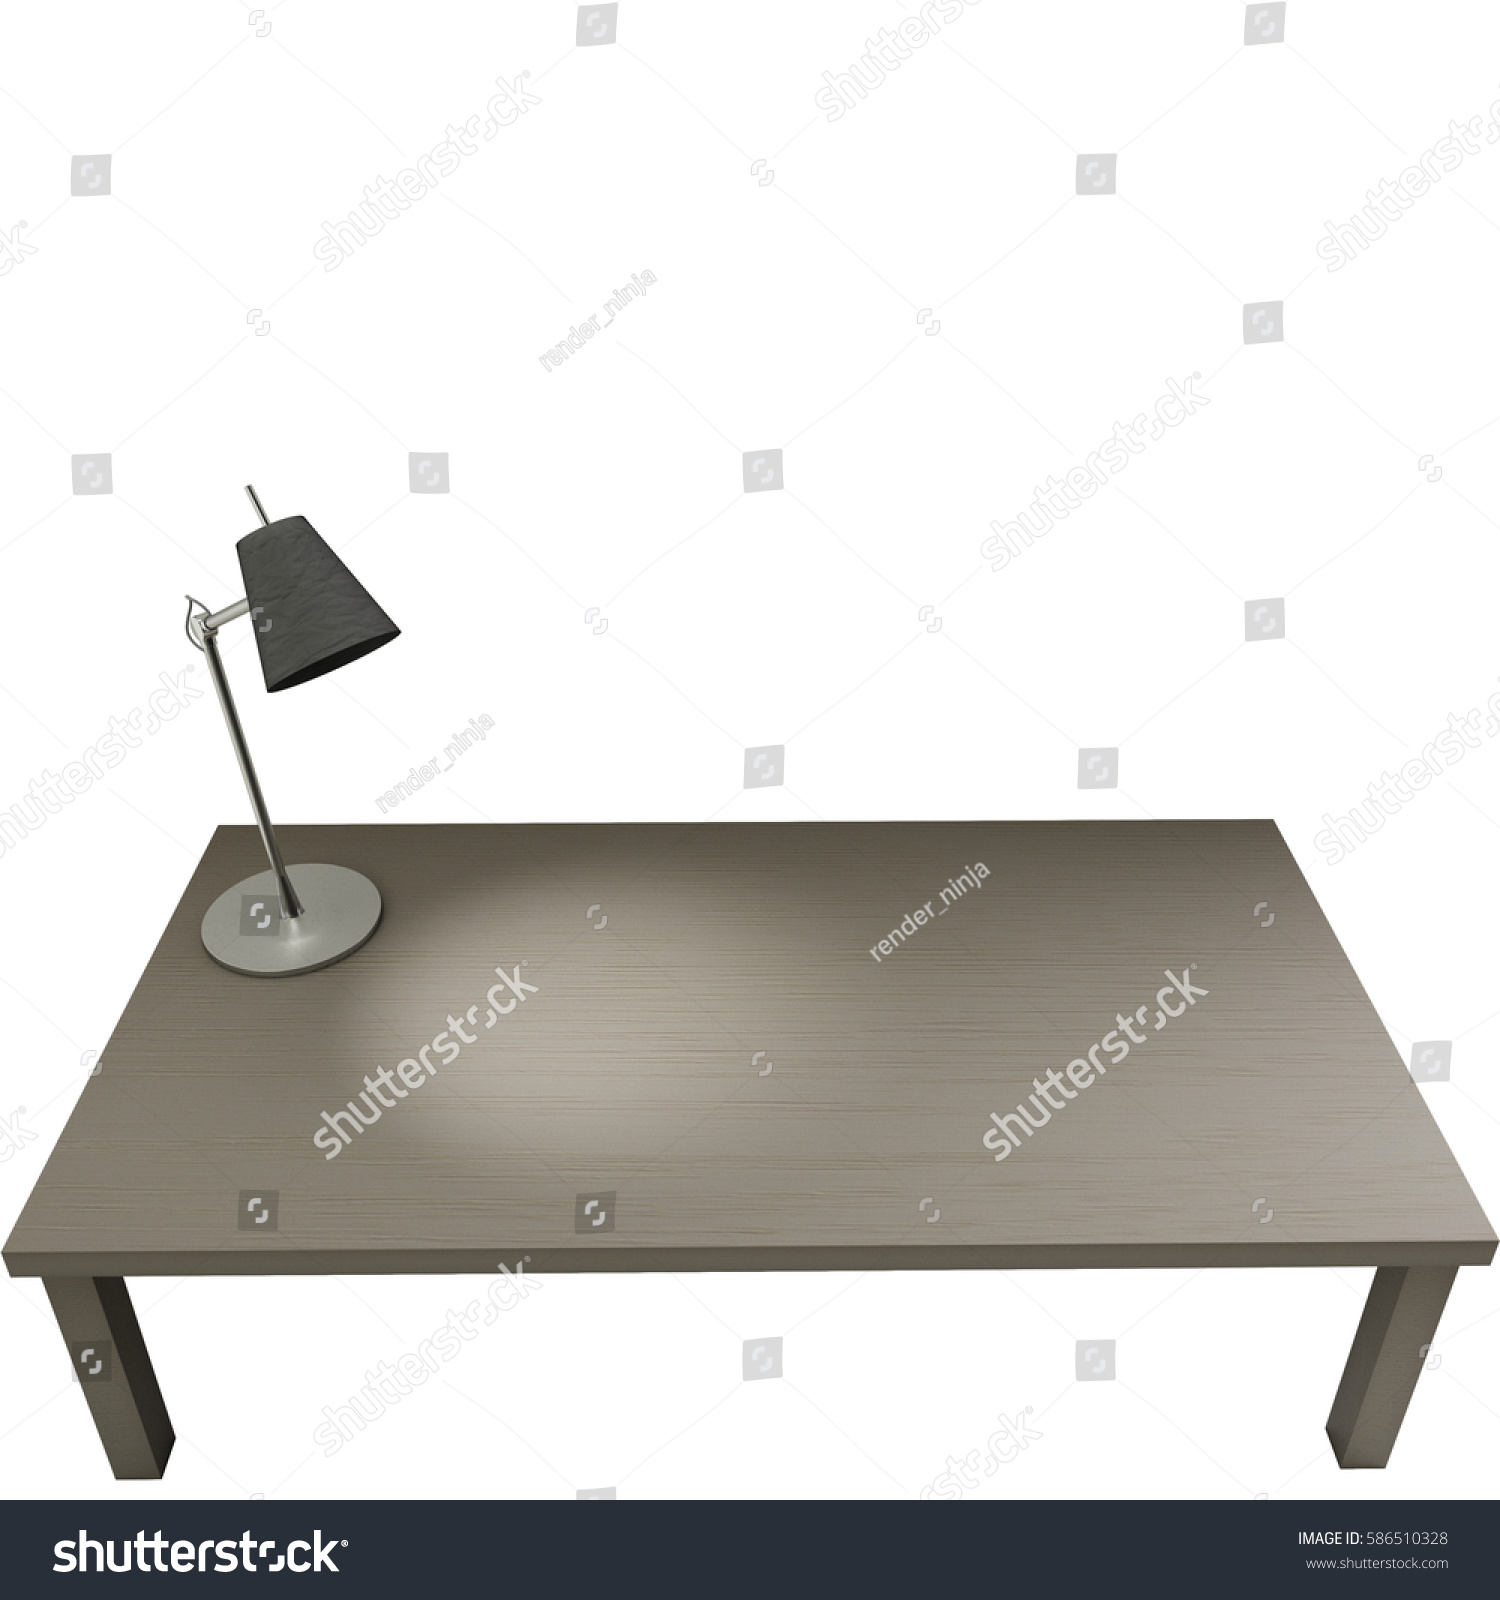 High quality table table lamp isolated stock illustration 586510328 high quality table with table lamp isolated on white background 3d render 3d illustration aloadofball Choice Image